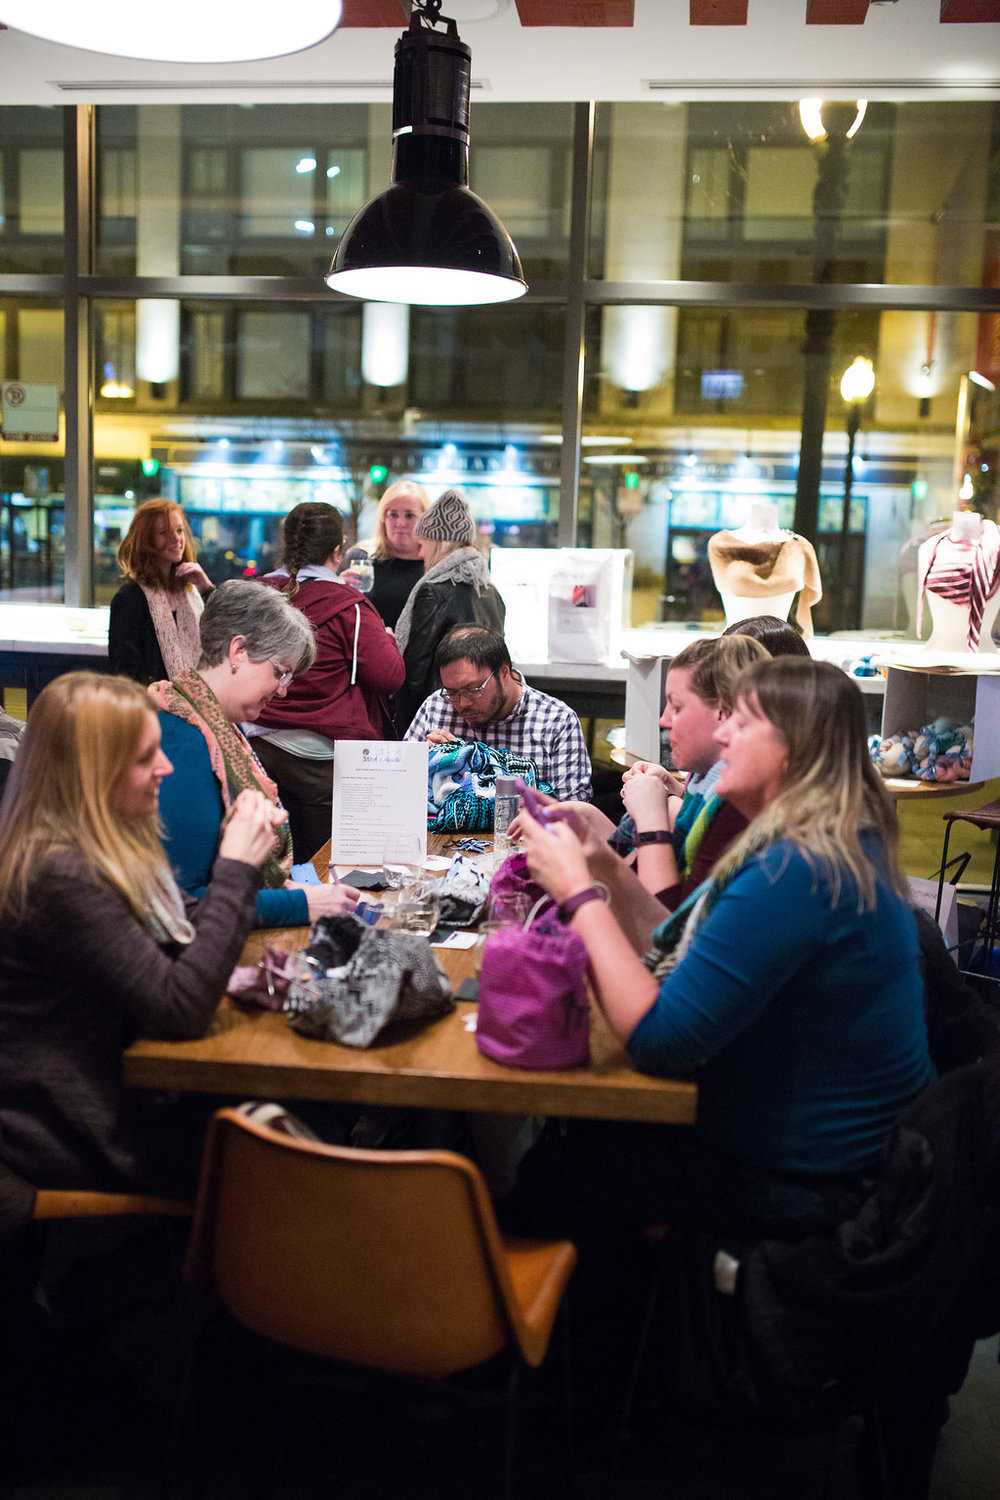 KnitNiteChicago_2018_Stitch_And_Hustle_HannahSchweissPhotography_WebResMASTER_106.jpg